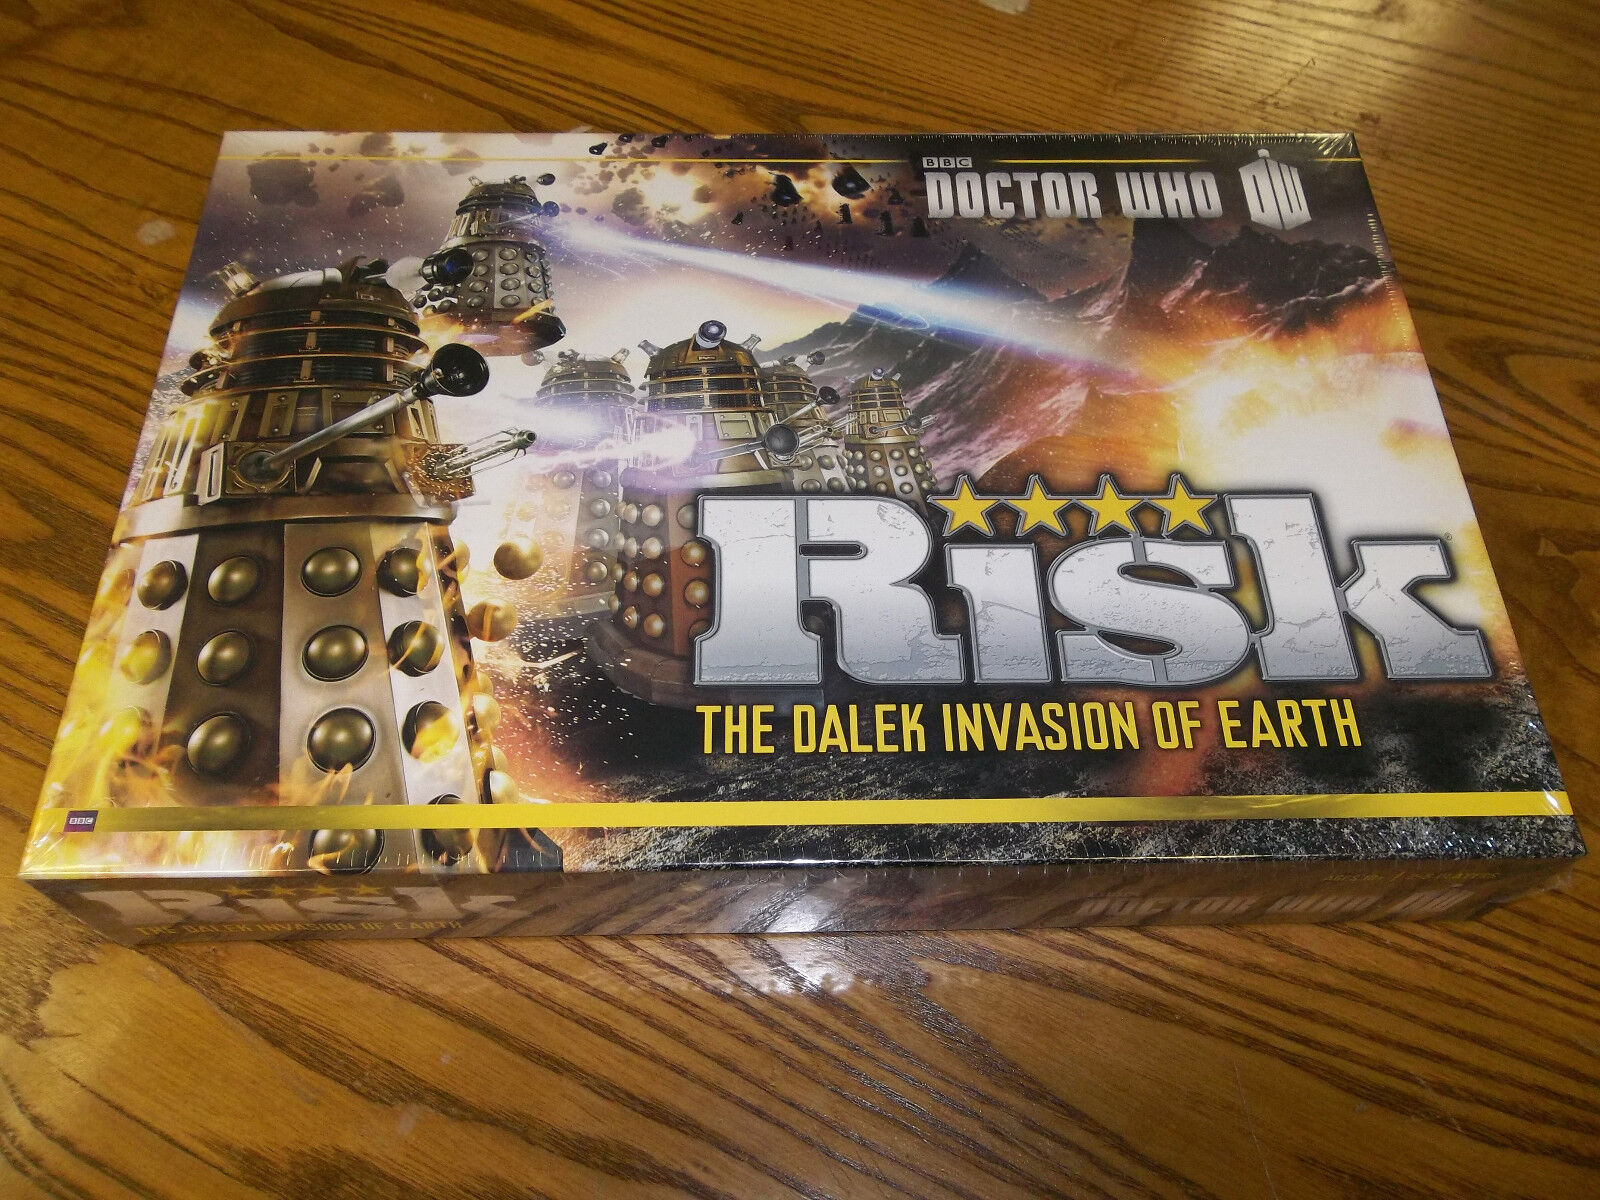 DOCTOR WHO RISK The Dalek Invasion Invasion Invasion of Earth   New + Still Sealed   1a2a71